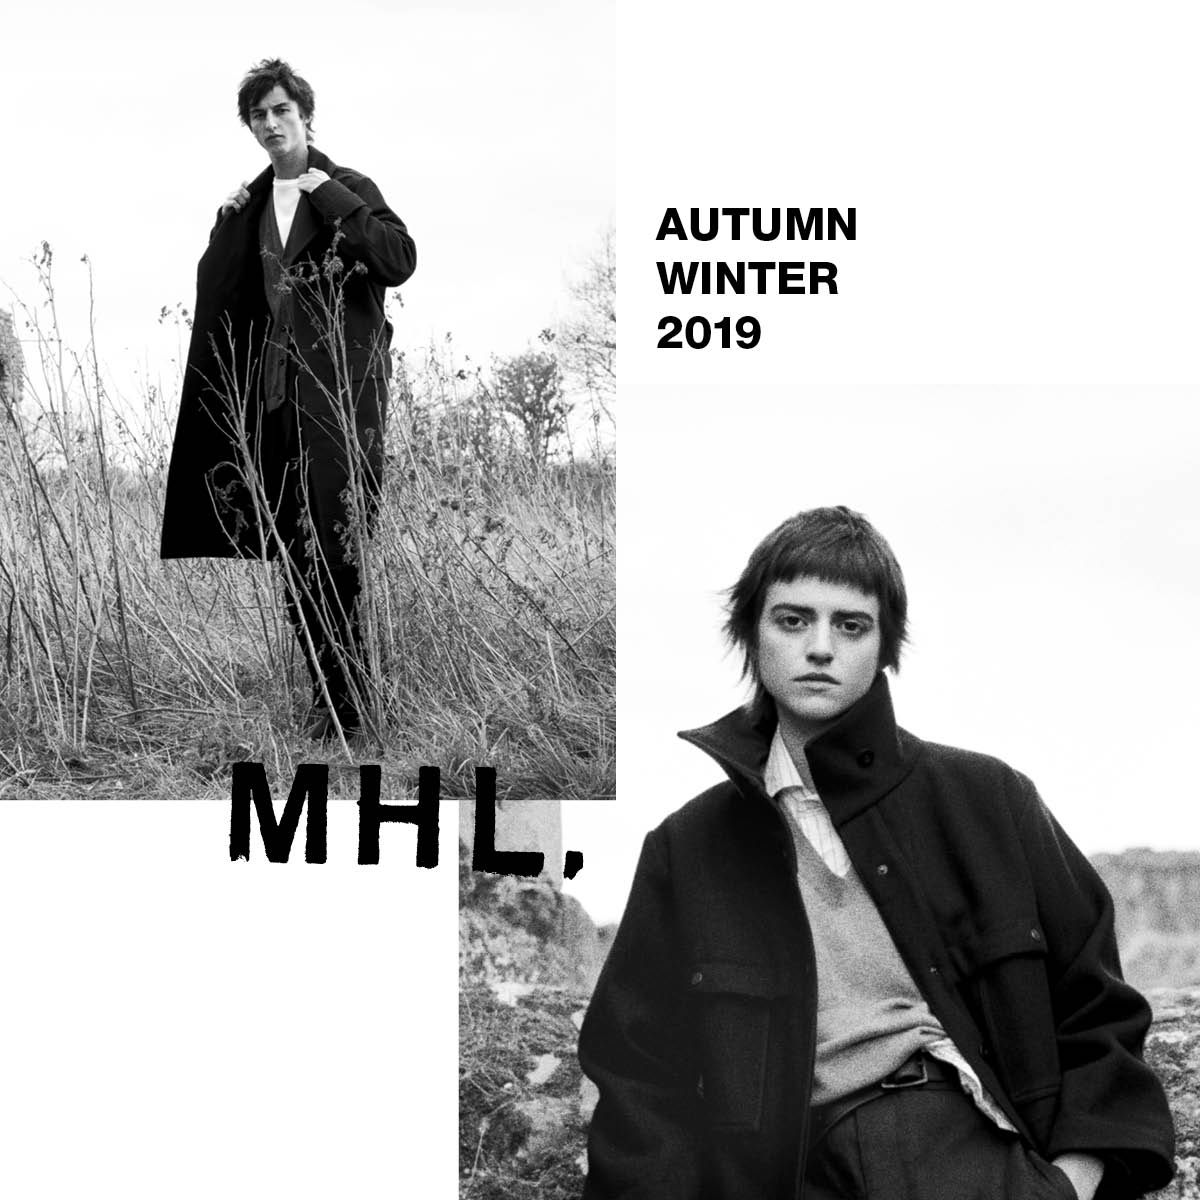 MHL. AUTUMN WINTER 2019